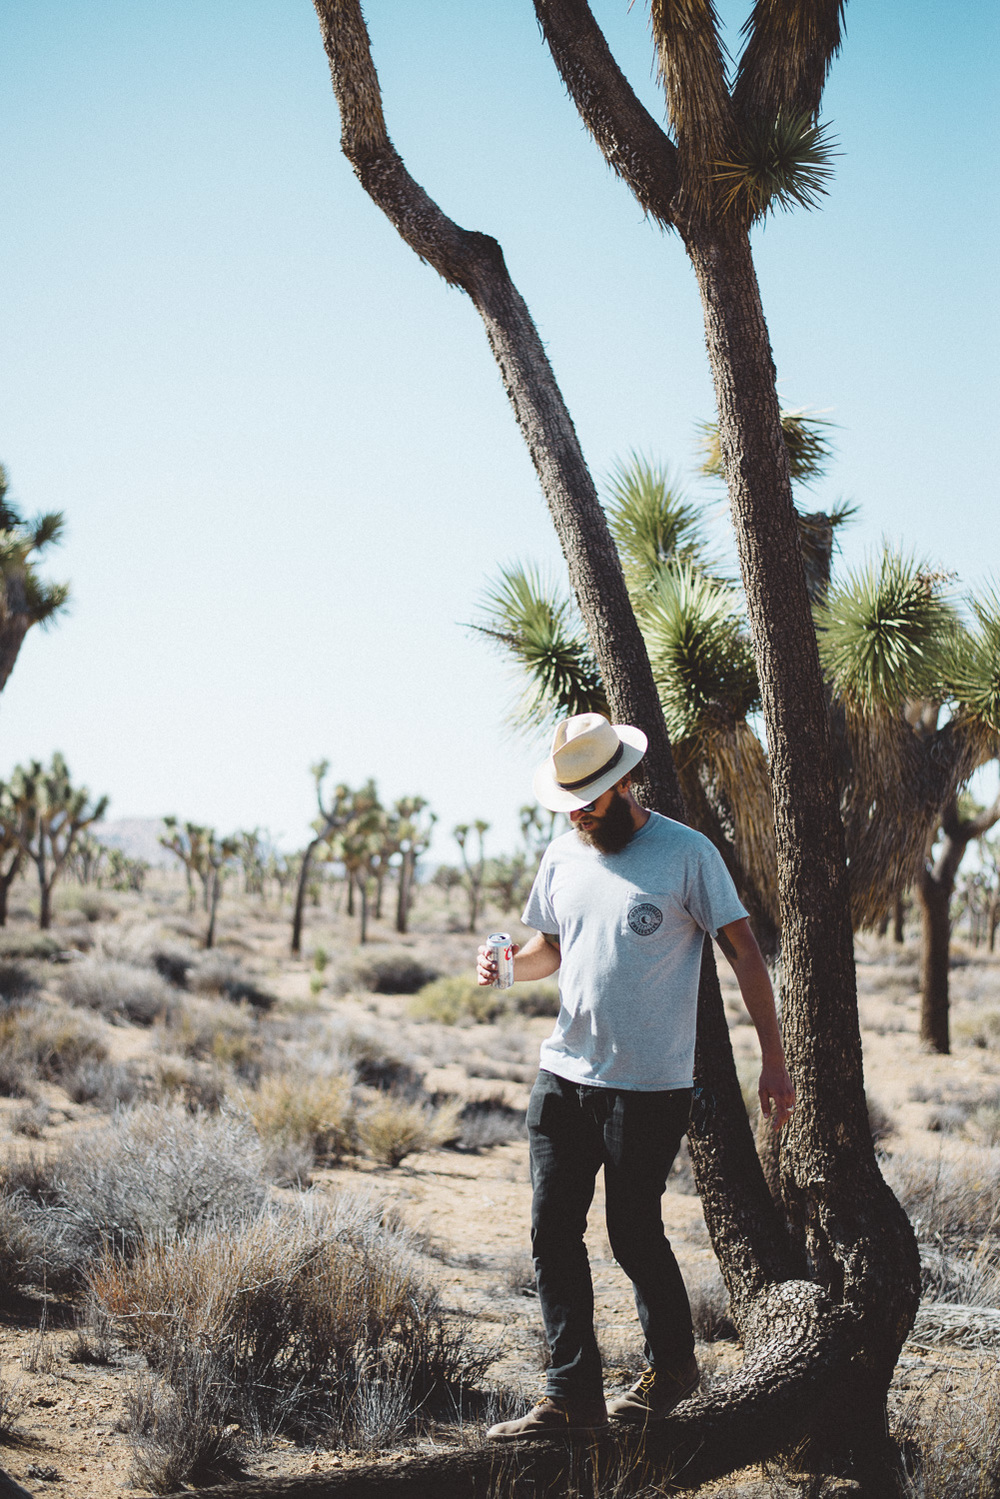 lex_mike_joshua_tree_photography_5639.jpg